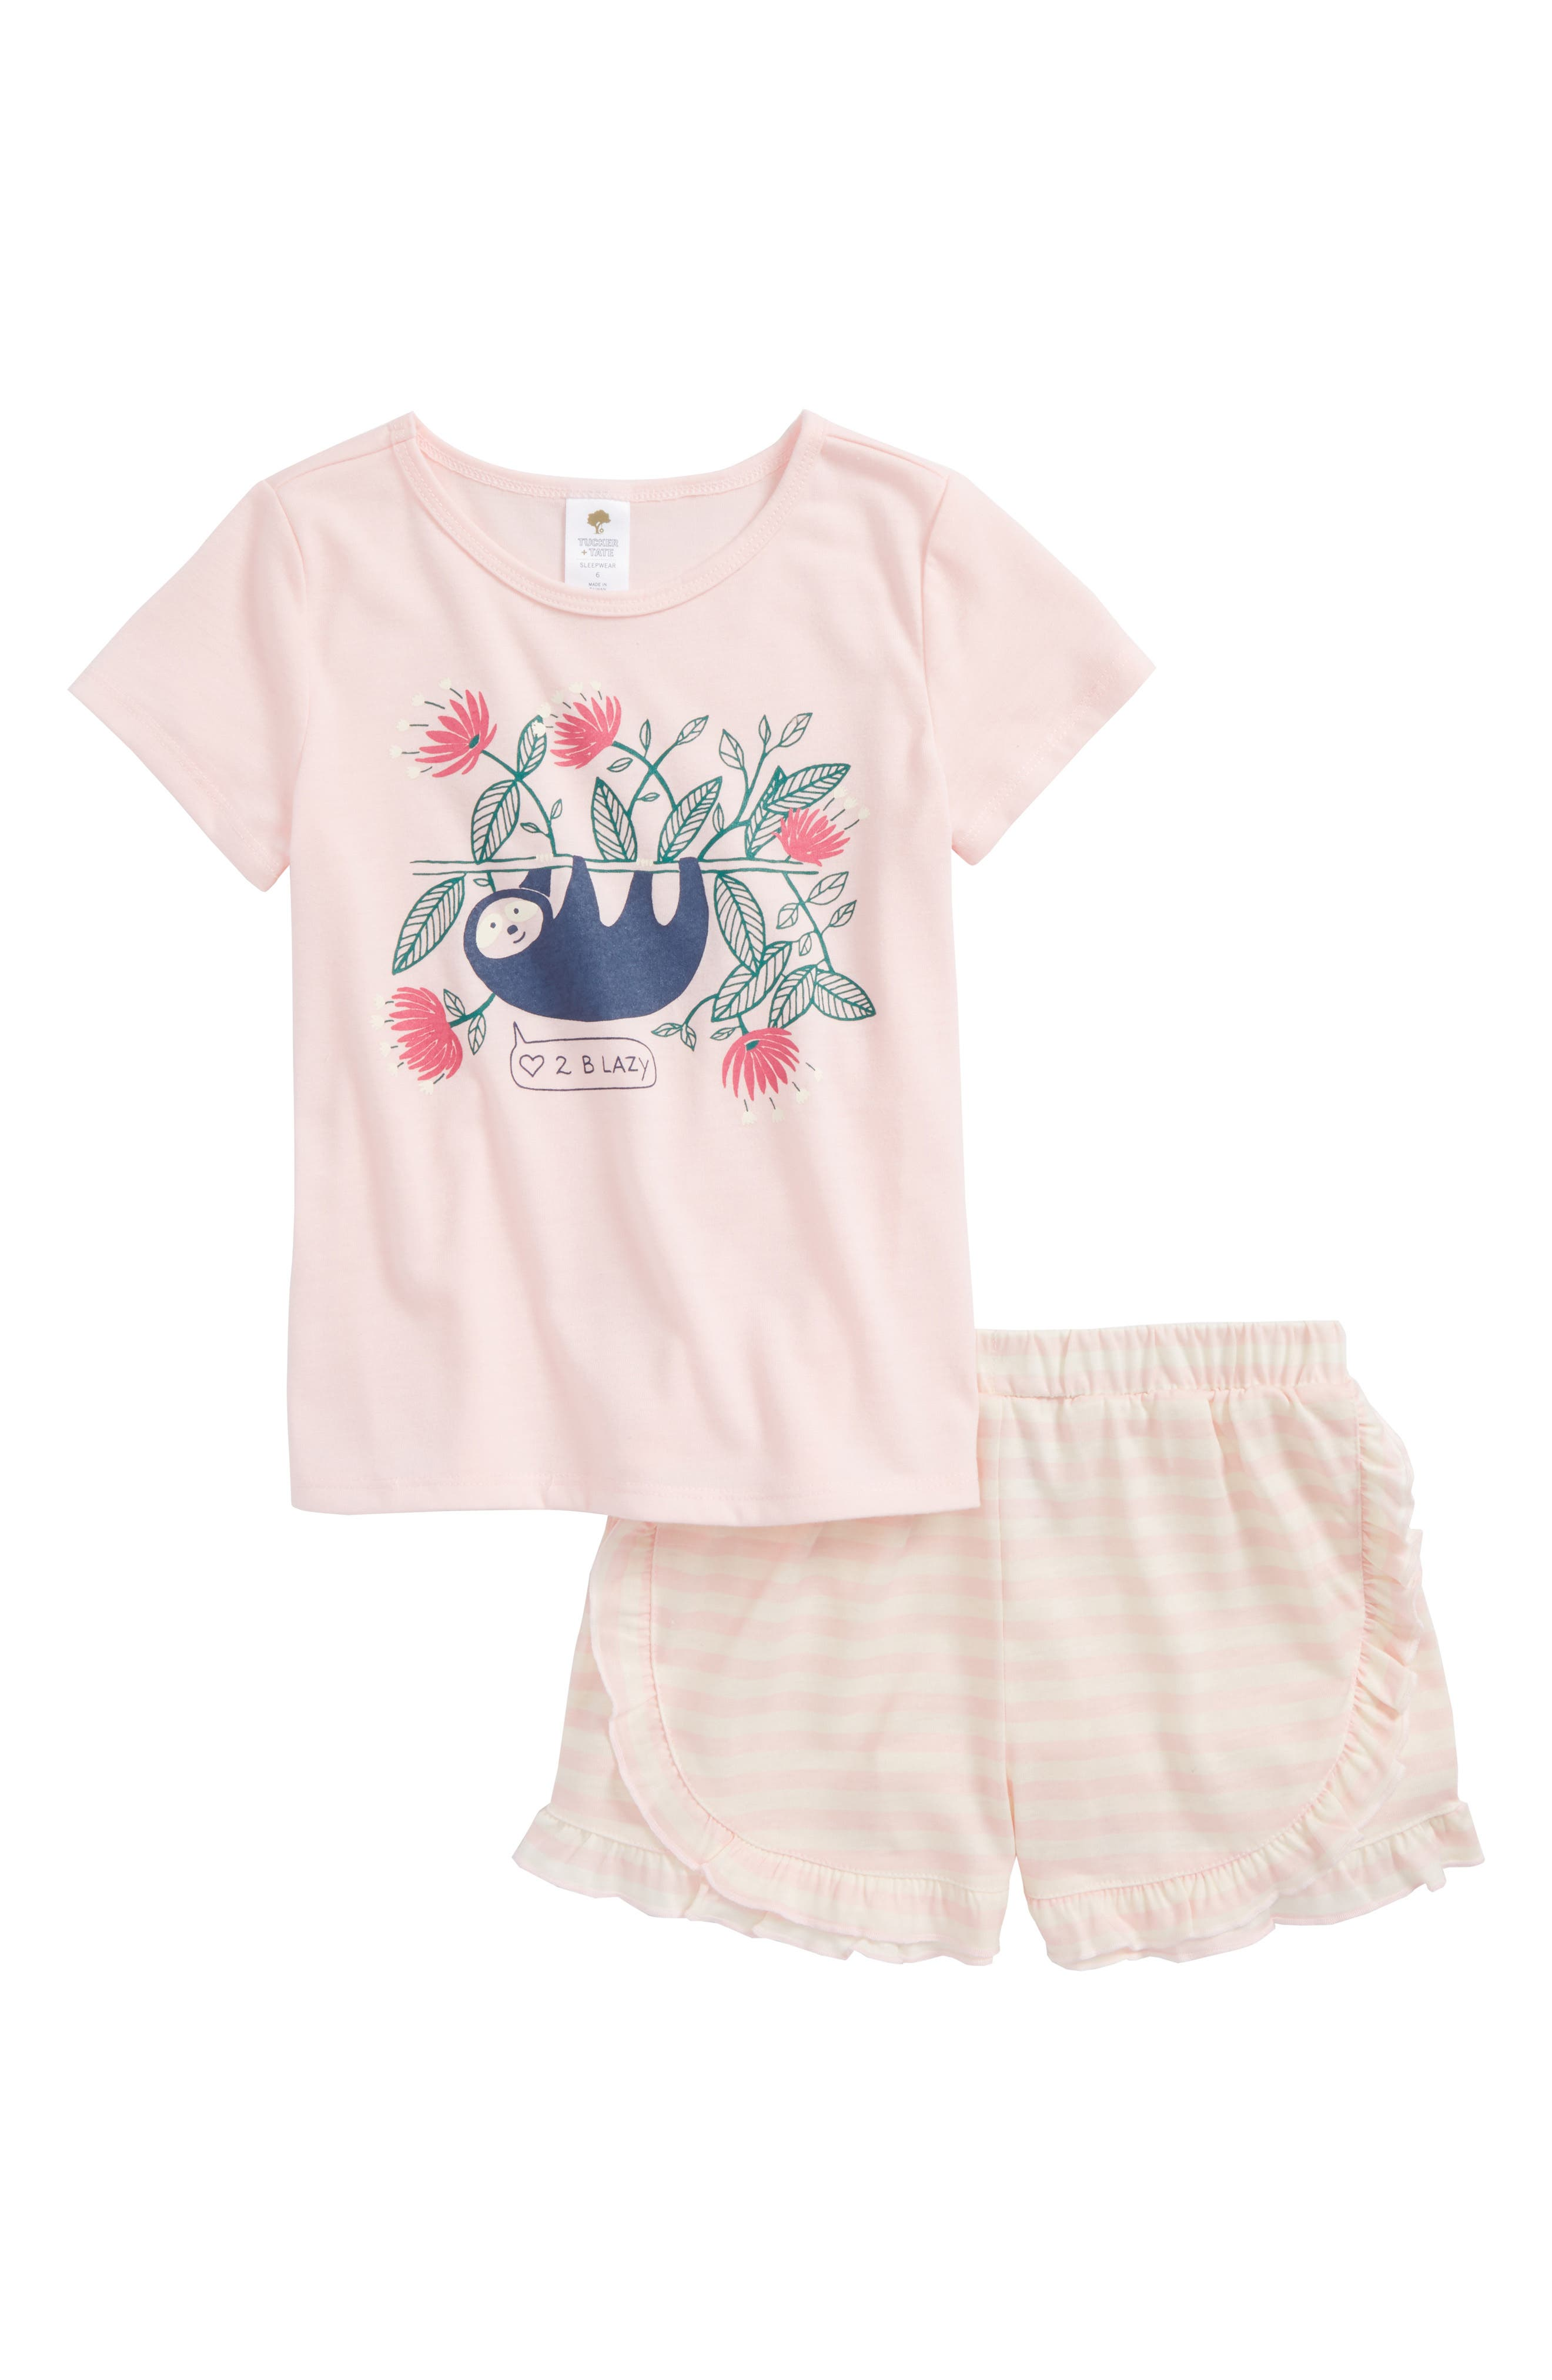 Two-Piece Pajamas,                             Main thumbnail 1, color,                             Pink Baby Sloth